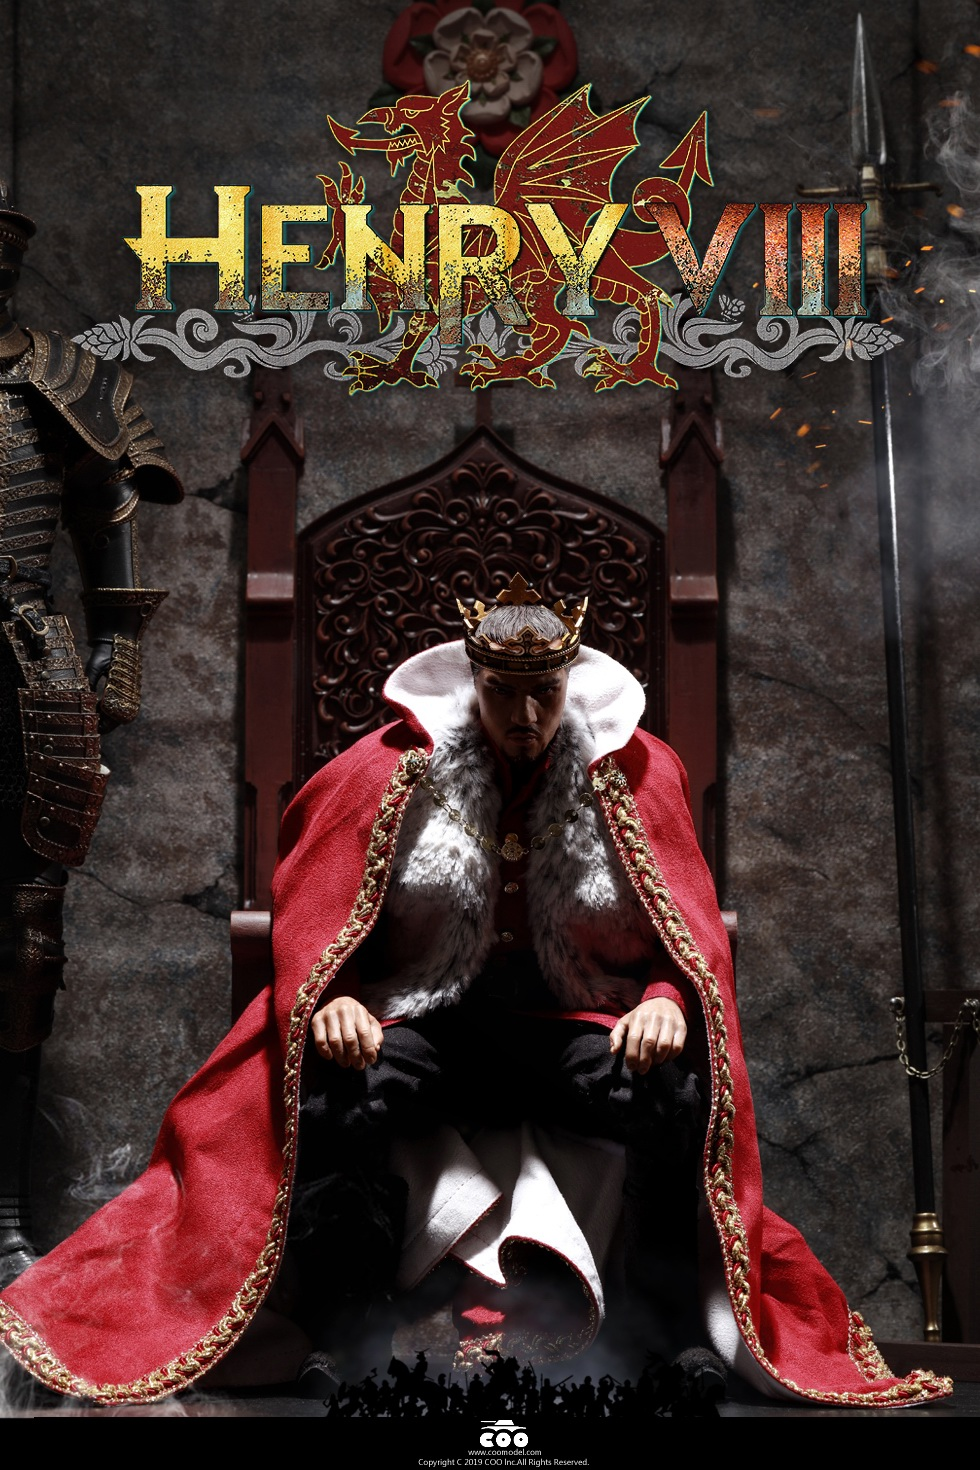 CooModel - NEW PRODUCT: COOMODEL: 1 / 6 alloy die-casting empire series - Henry VIII Lions version of the red dragon version of the Tudor version of the Wolf Hall scene 00313510